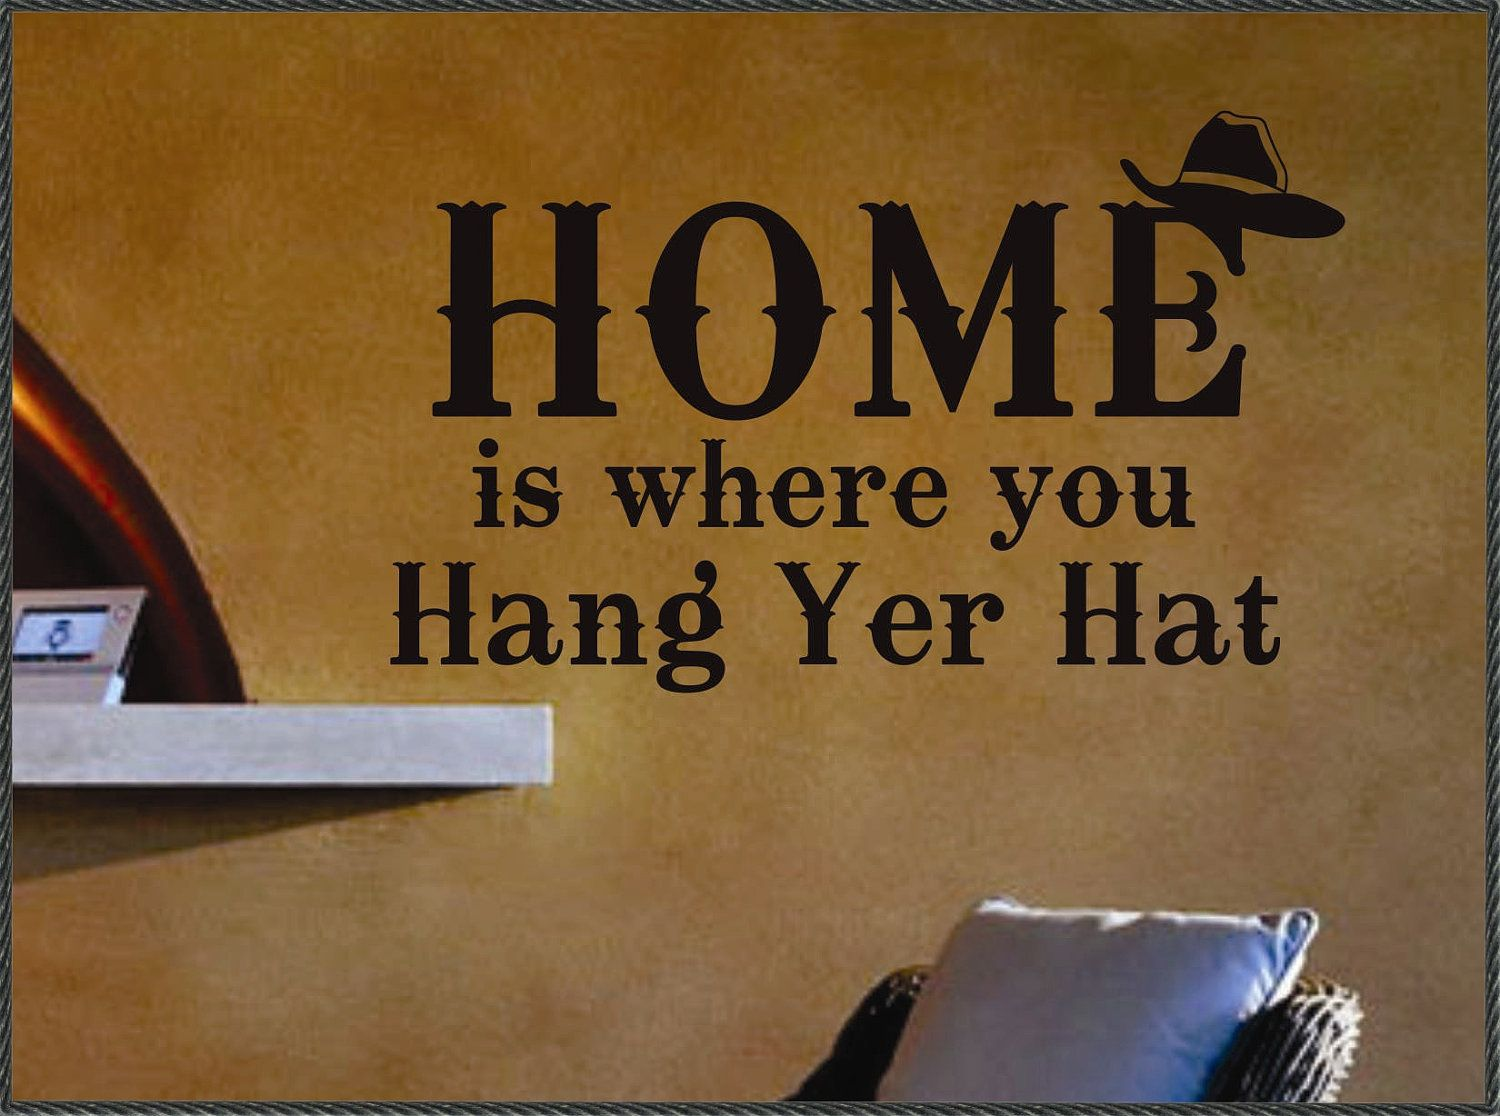 Western Wall Decal Home Where Hang Yer Hat Rustic Vinyl Wall